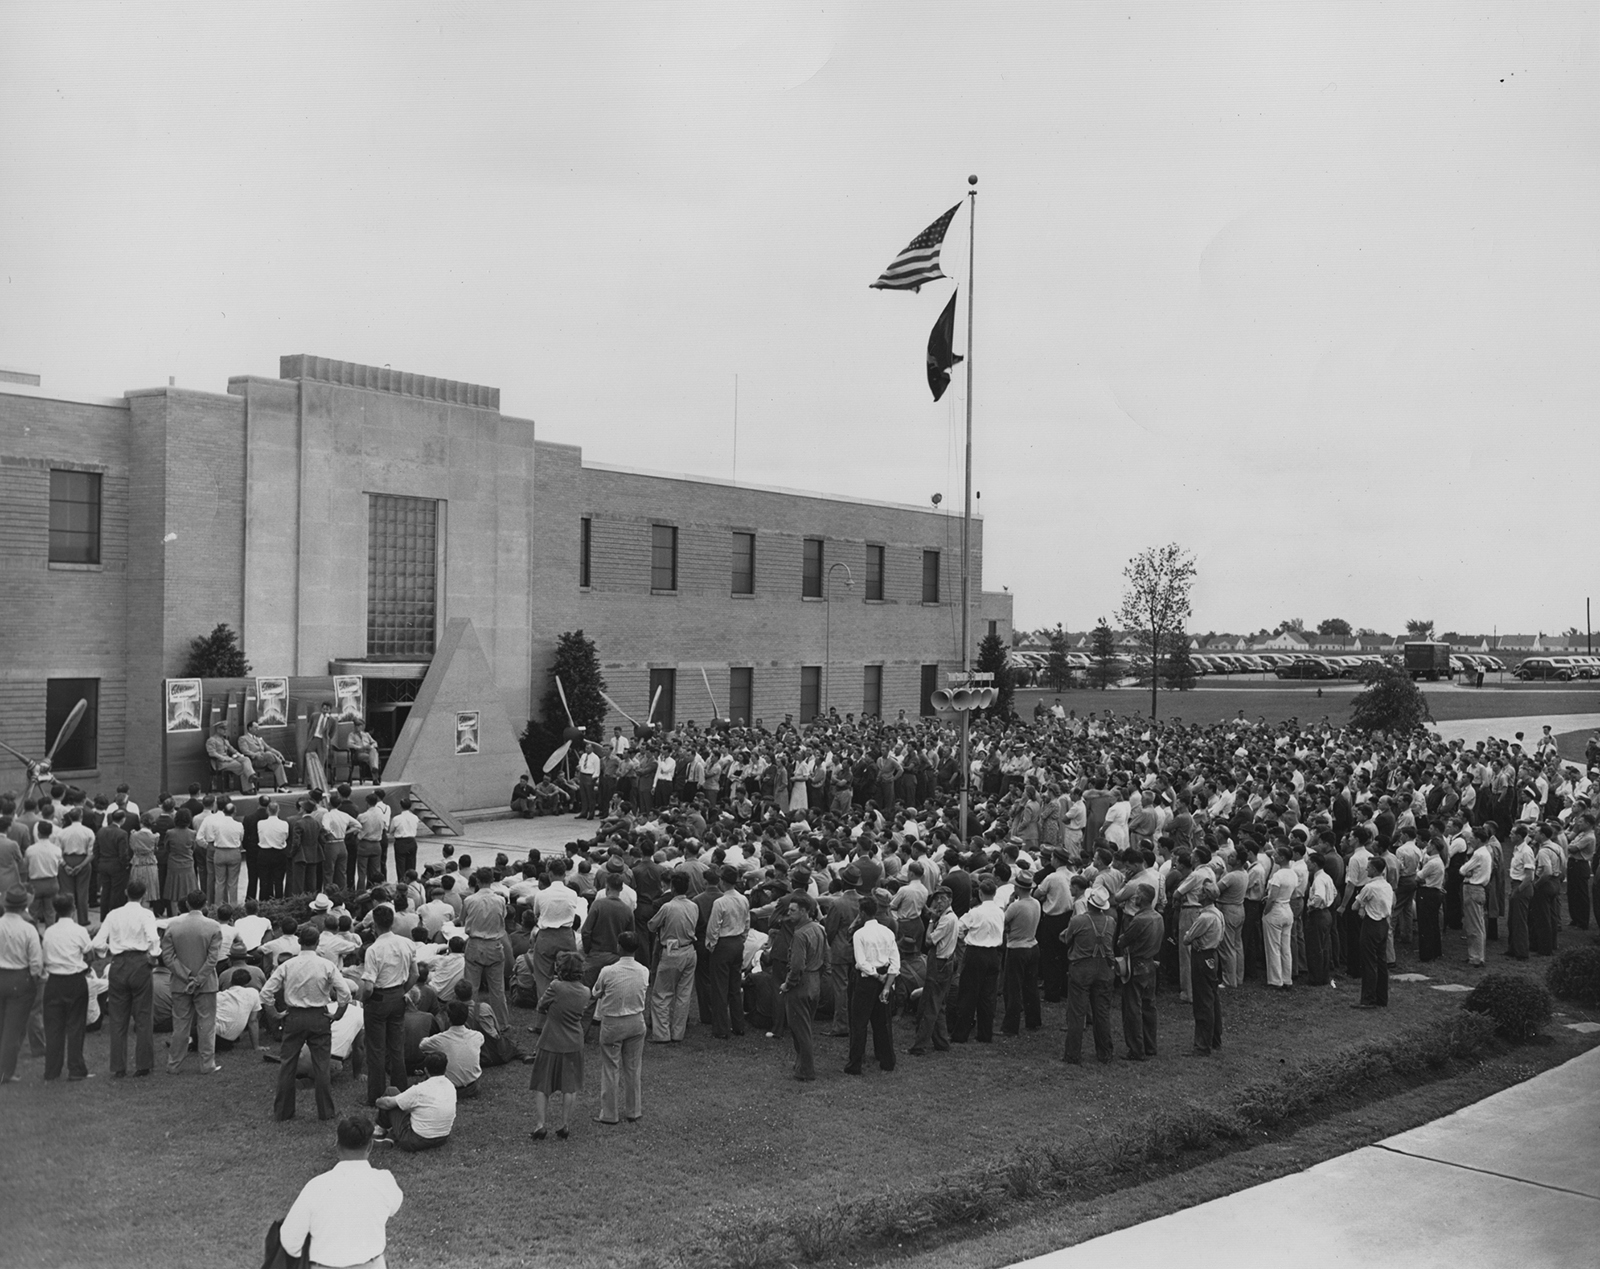 A crowd gathered outside Aeroproducts, undated (Photo by GM Aeroproducts Division, MS-305, Box 3a, Folder 9)